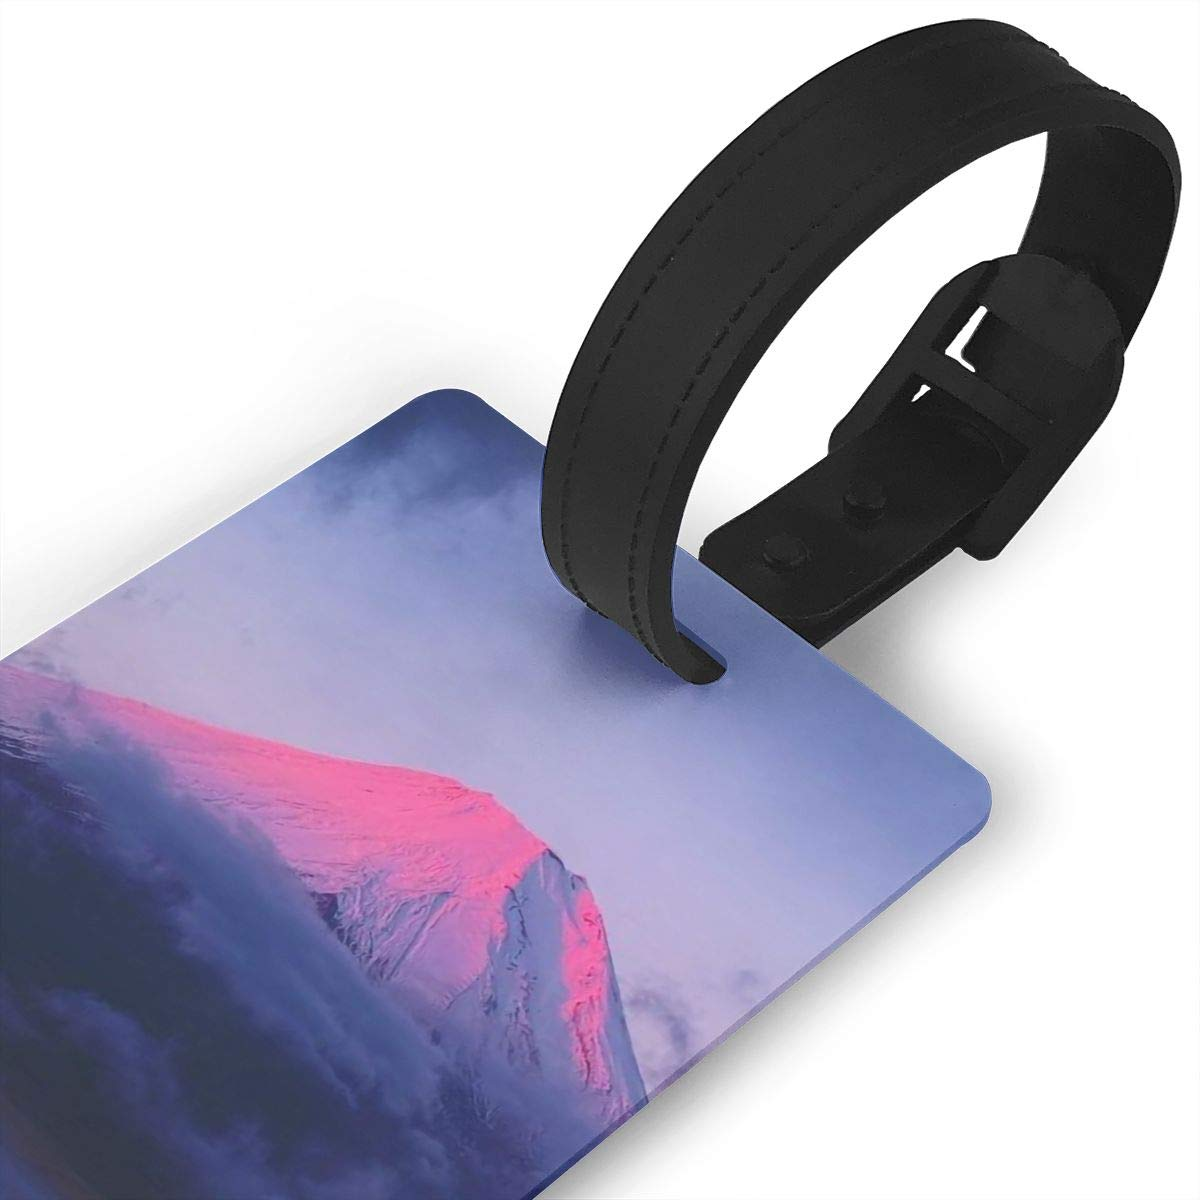 Mount Fuji Handbag Tag For Travel Tags Accessories 2 Pack Luggage Tags